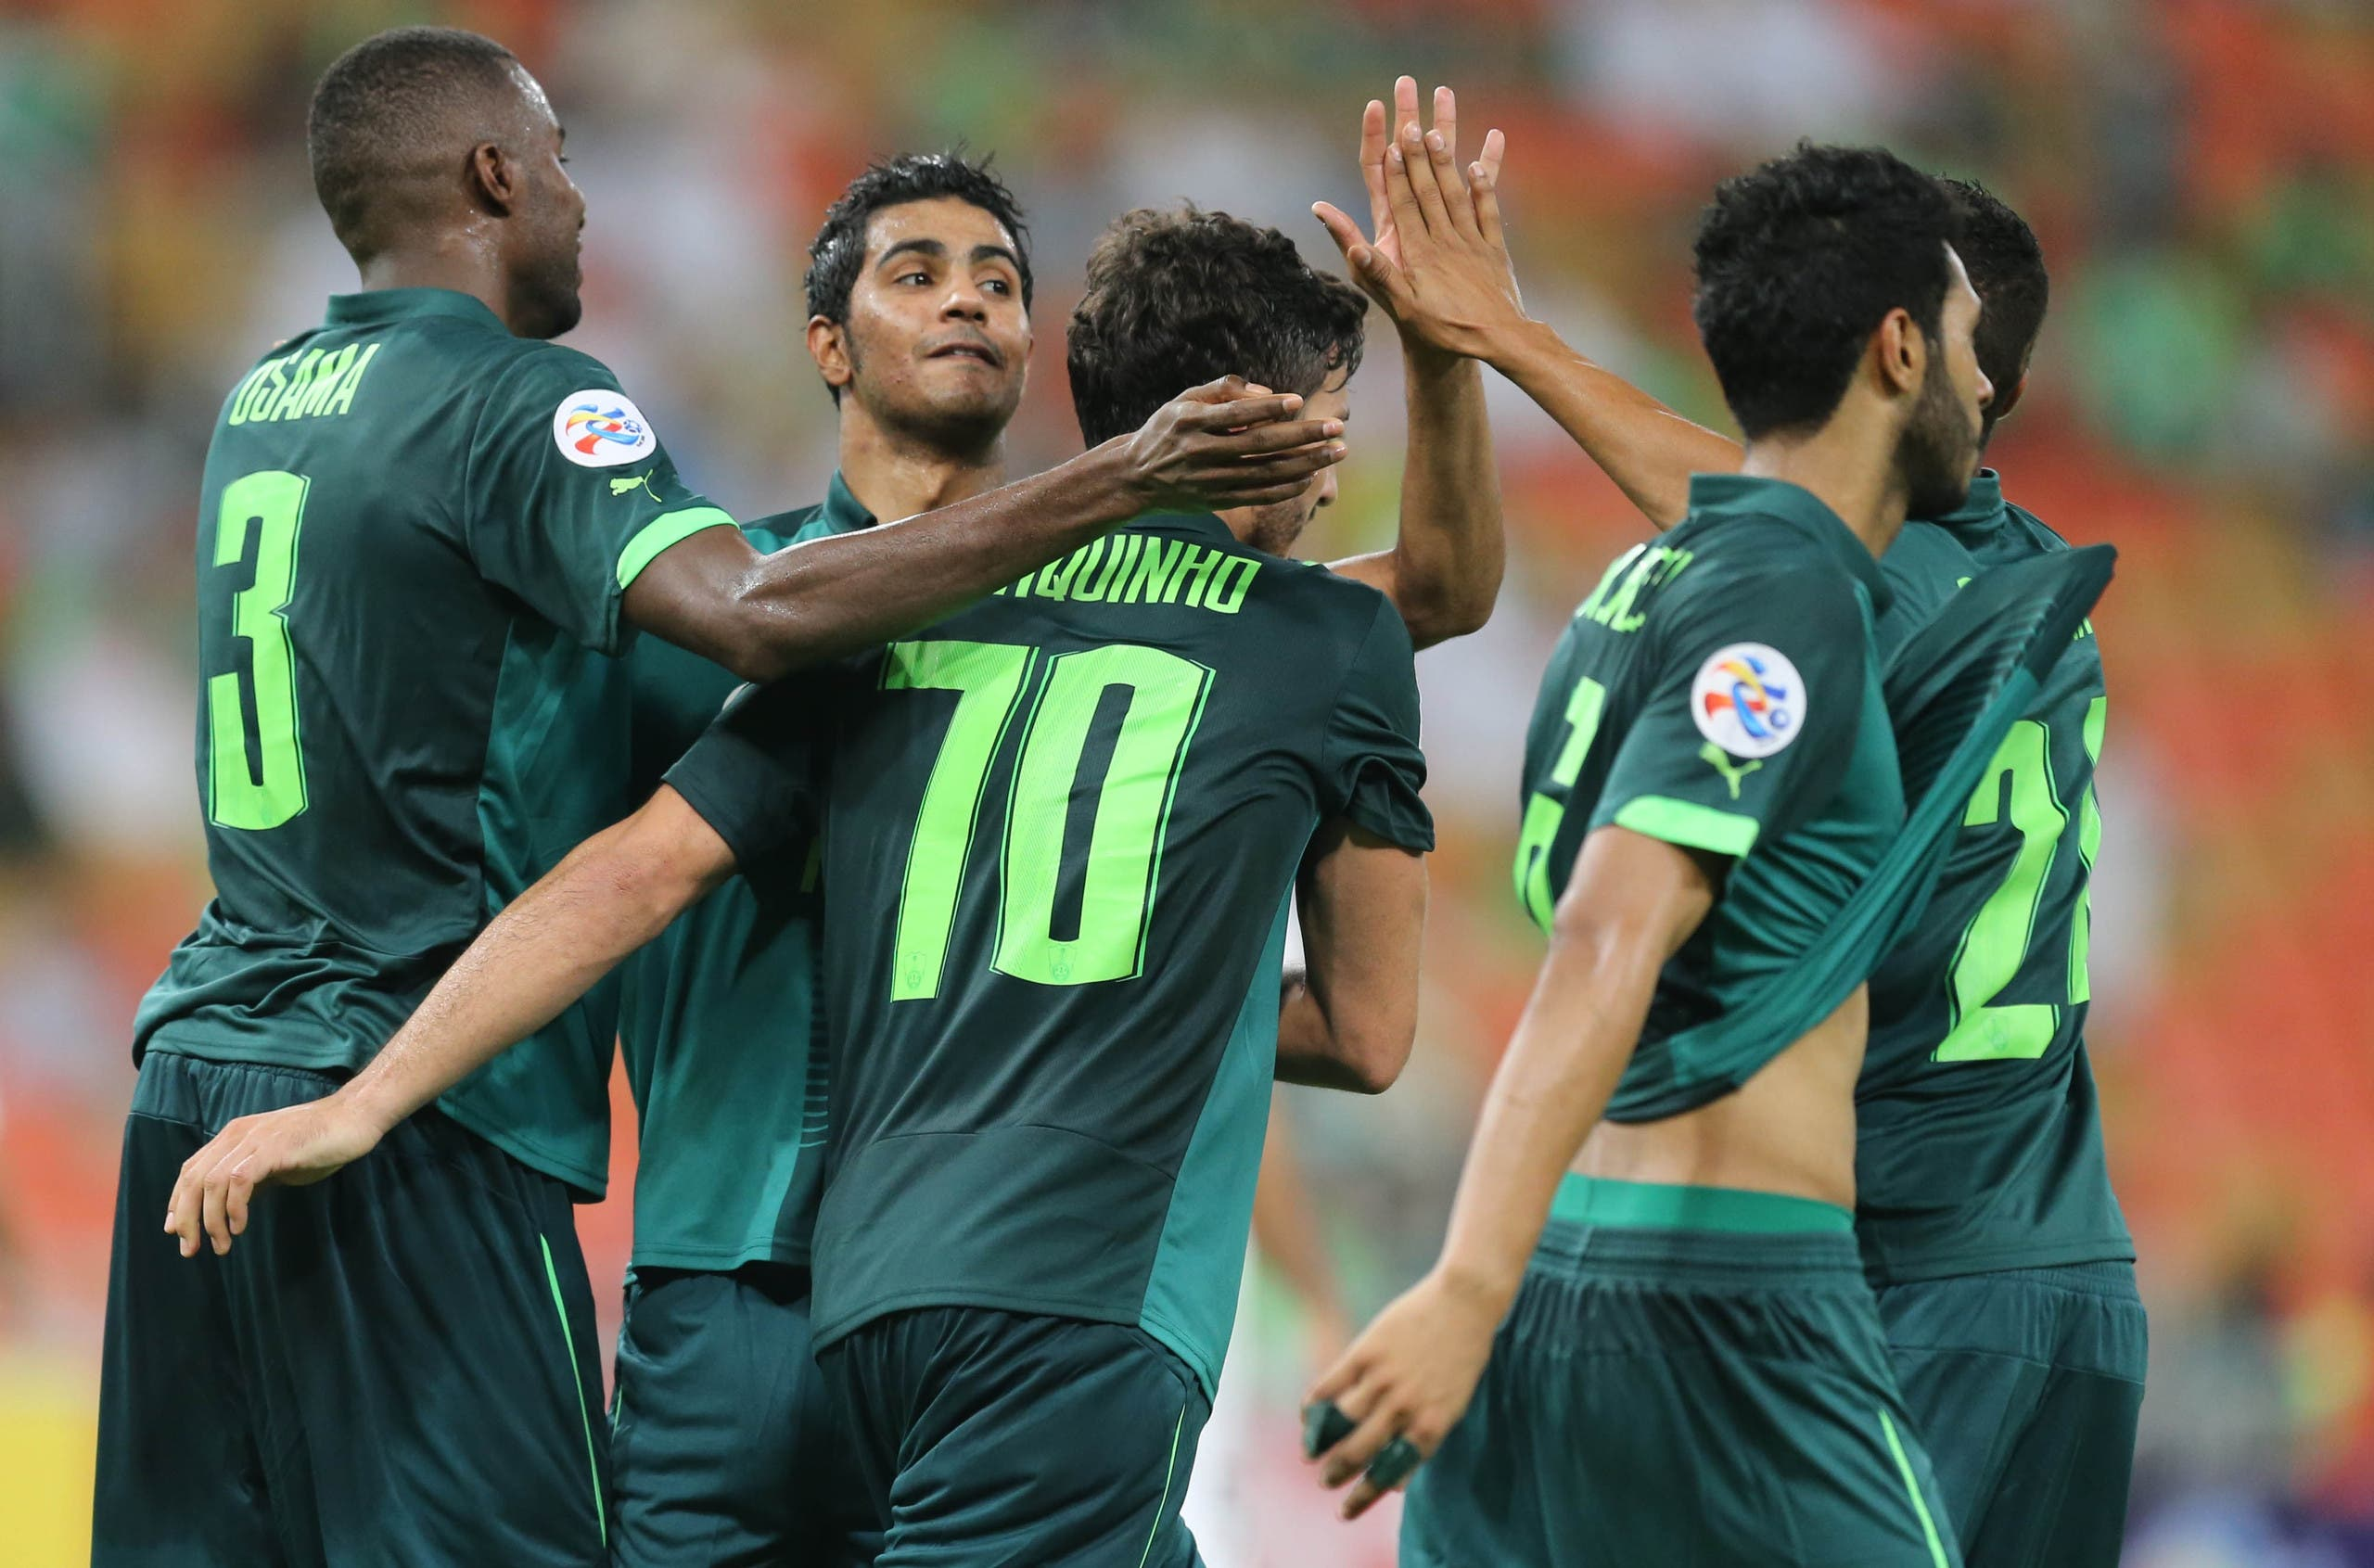 Saudi's Al-Ahli club players celebrate after scoring a goal during their AFC Champions League group D football match against Qatar's El-Jaish club at the King Abdullah Spots City in Jeddah on May 3, 2016. Al-Ahli won the match 2-0. (AFP)